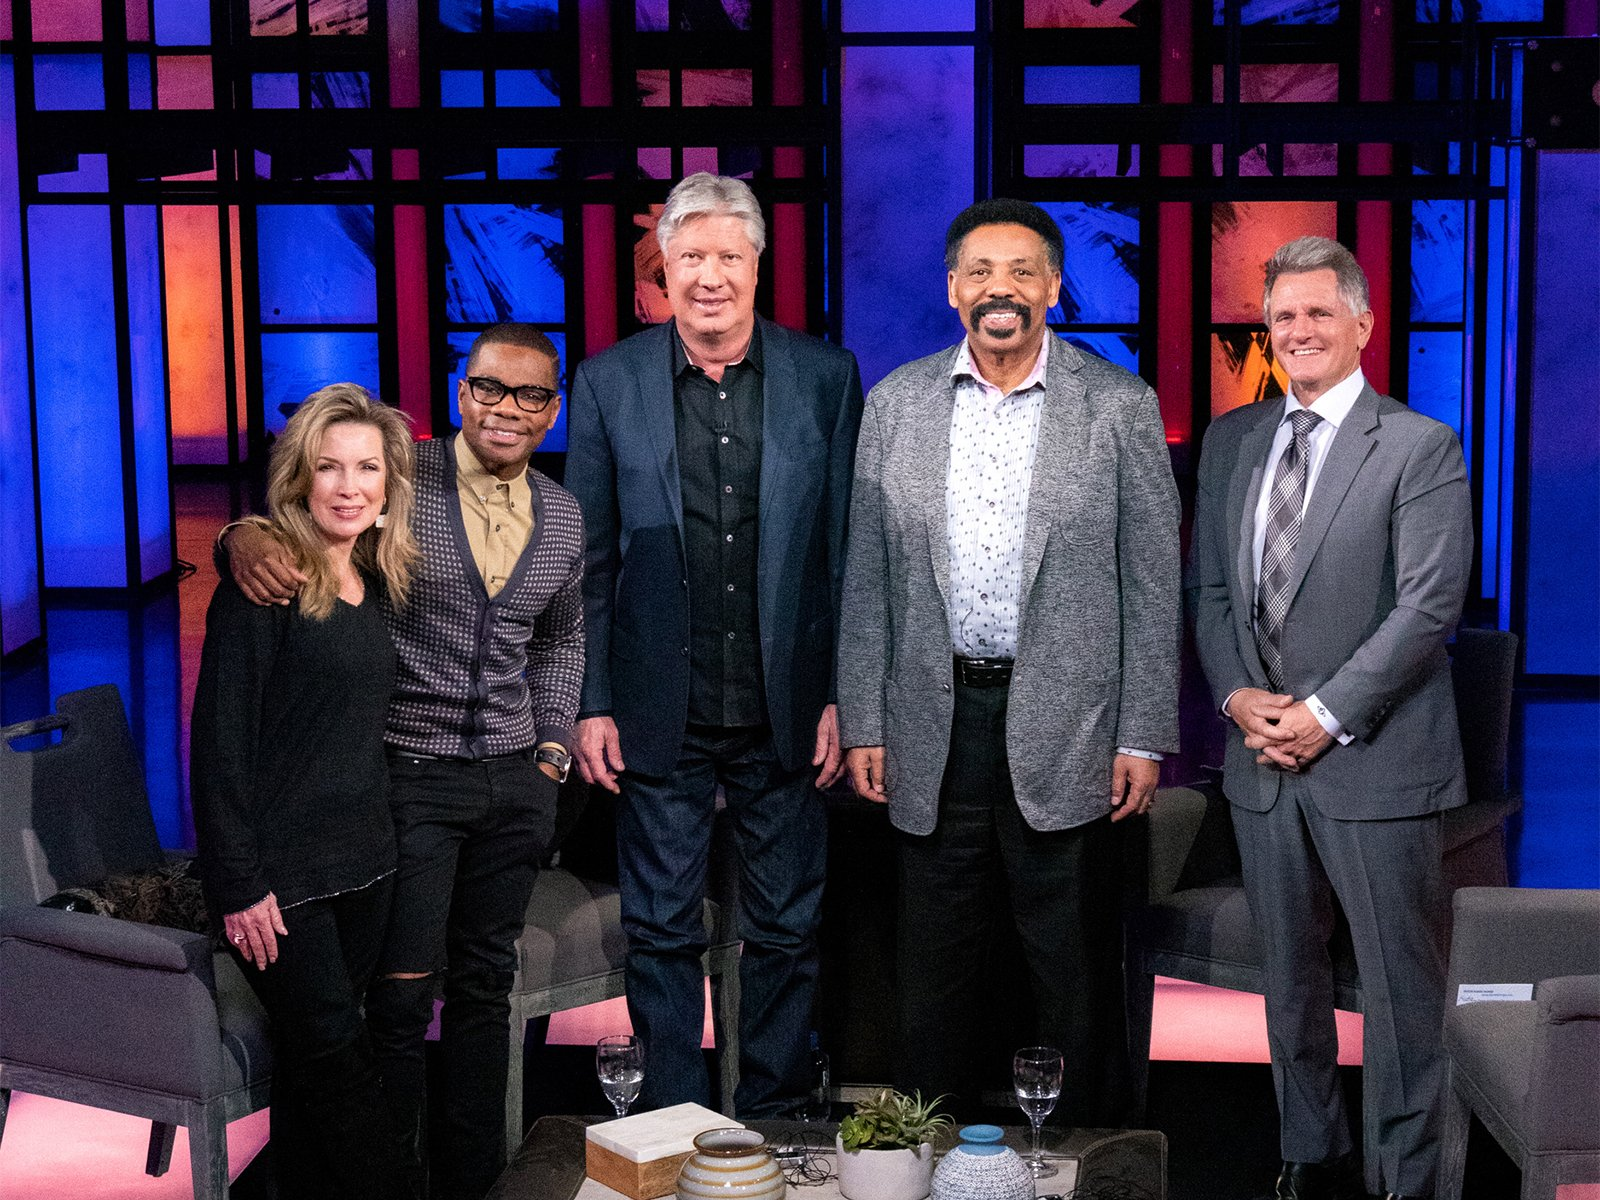 WATCH: TBN to Air Special on Race Relations in the Church With Kirk Franklin, Pastor Tony Evans, Pastor Robert Morris, and Matt Crouch Four Months After Dove Awards Controversy